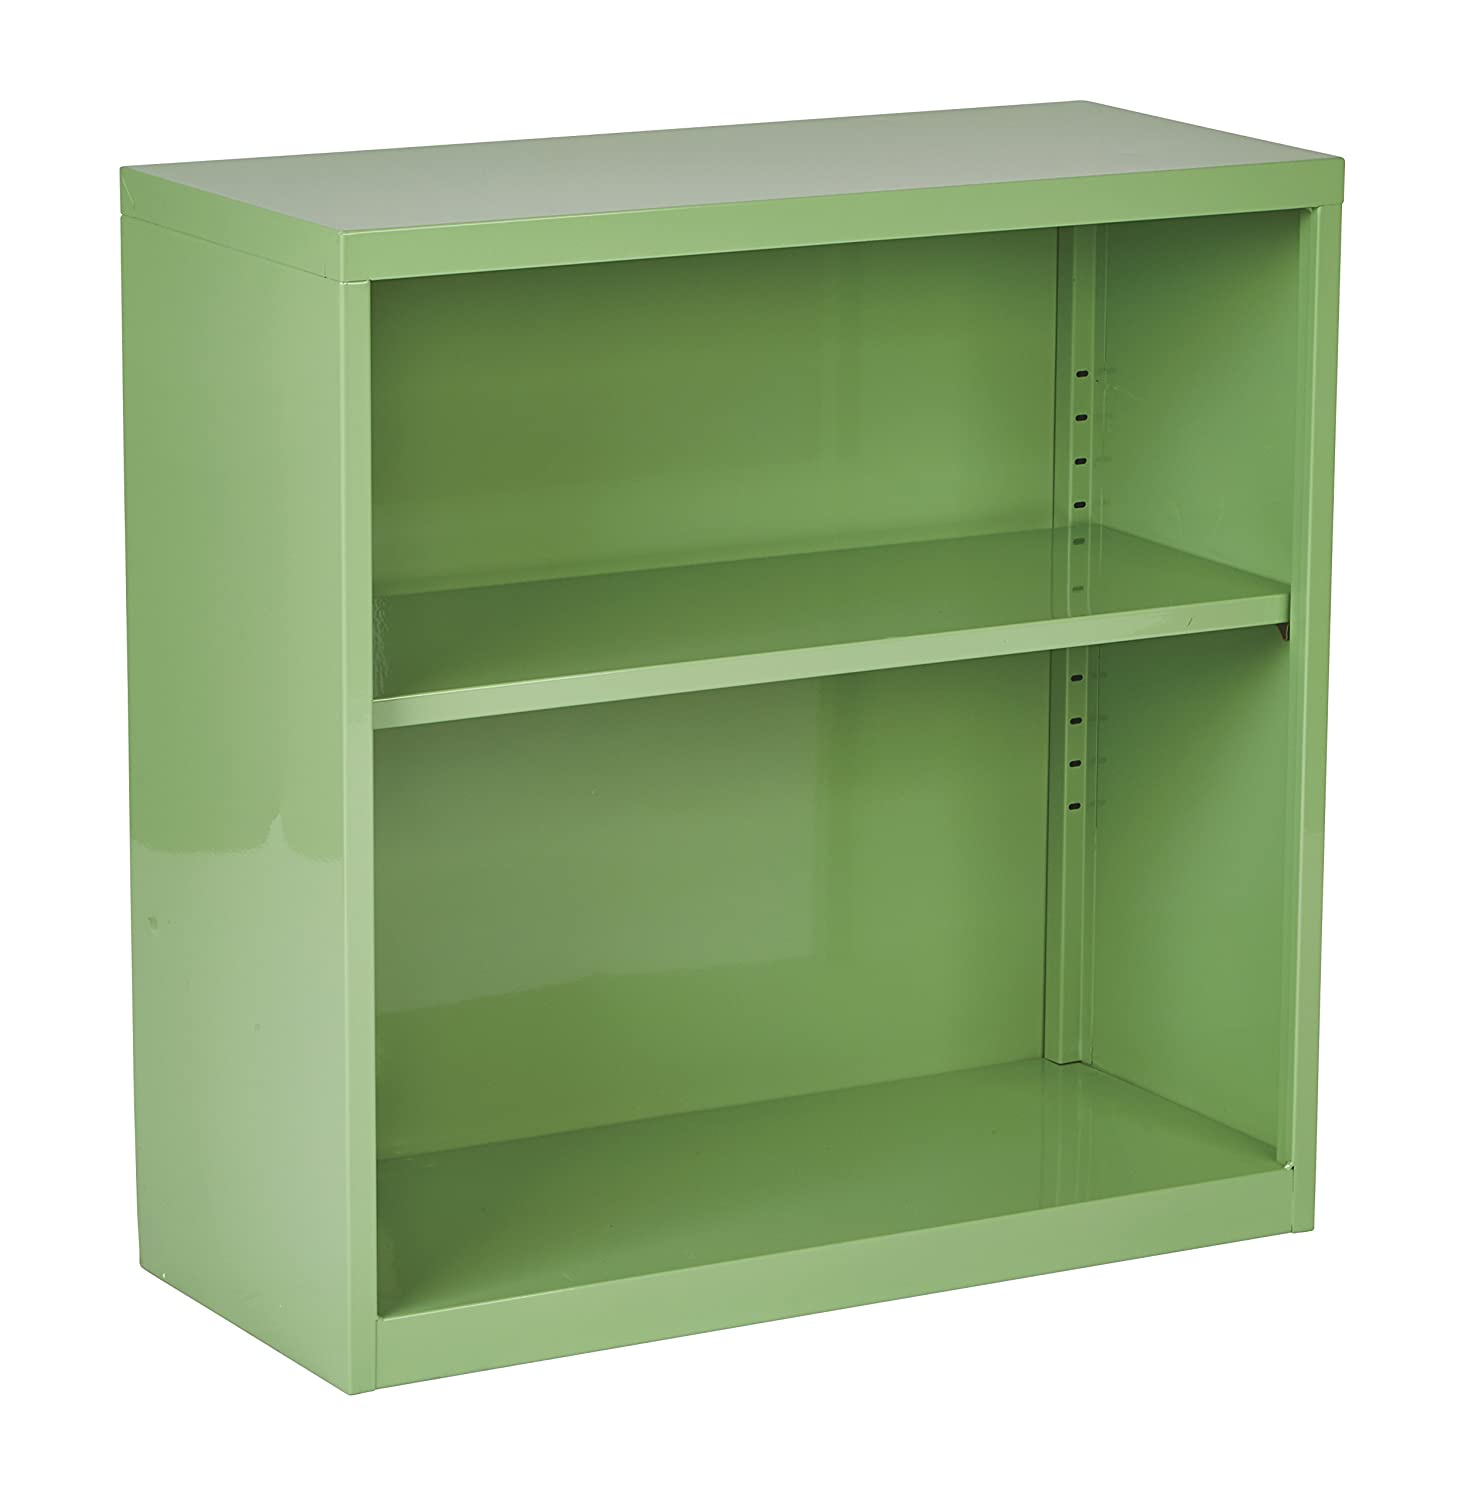 bookcases metal office hon value bookcase furniture products shelf equipment image